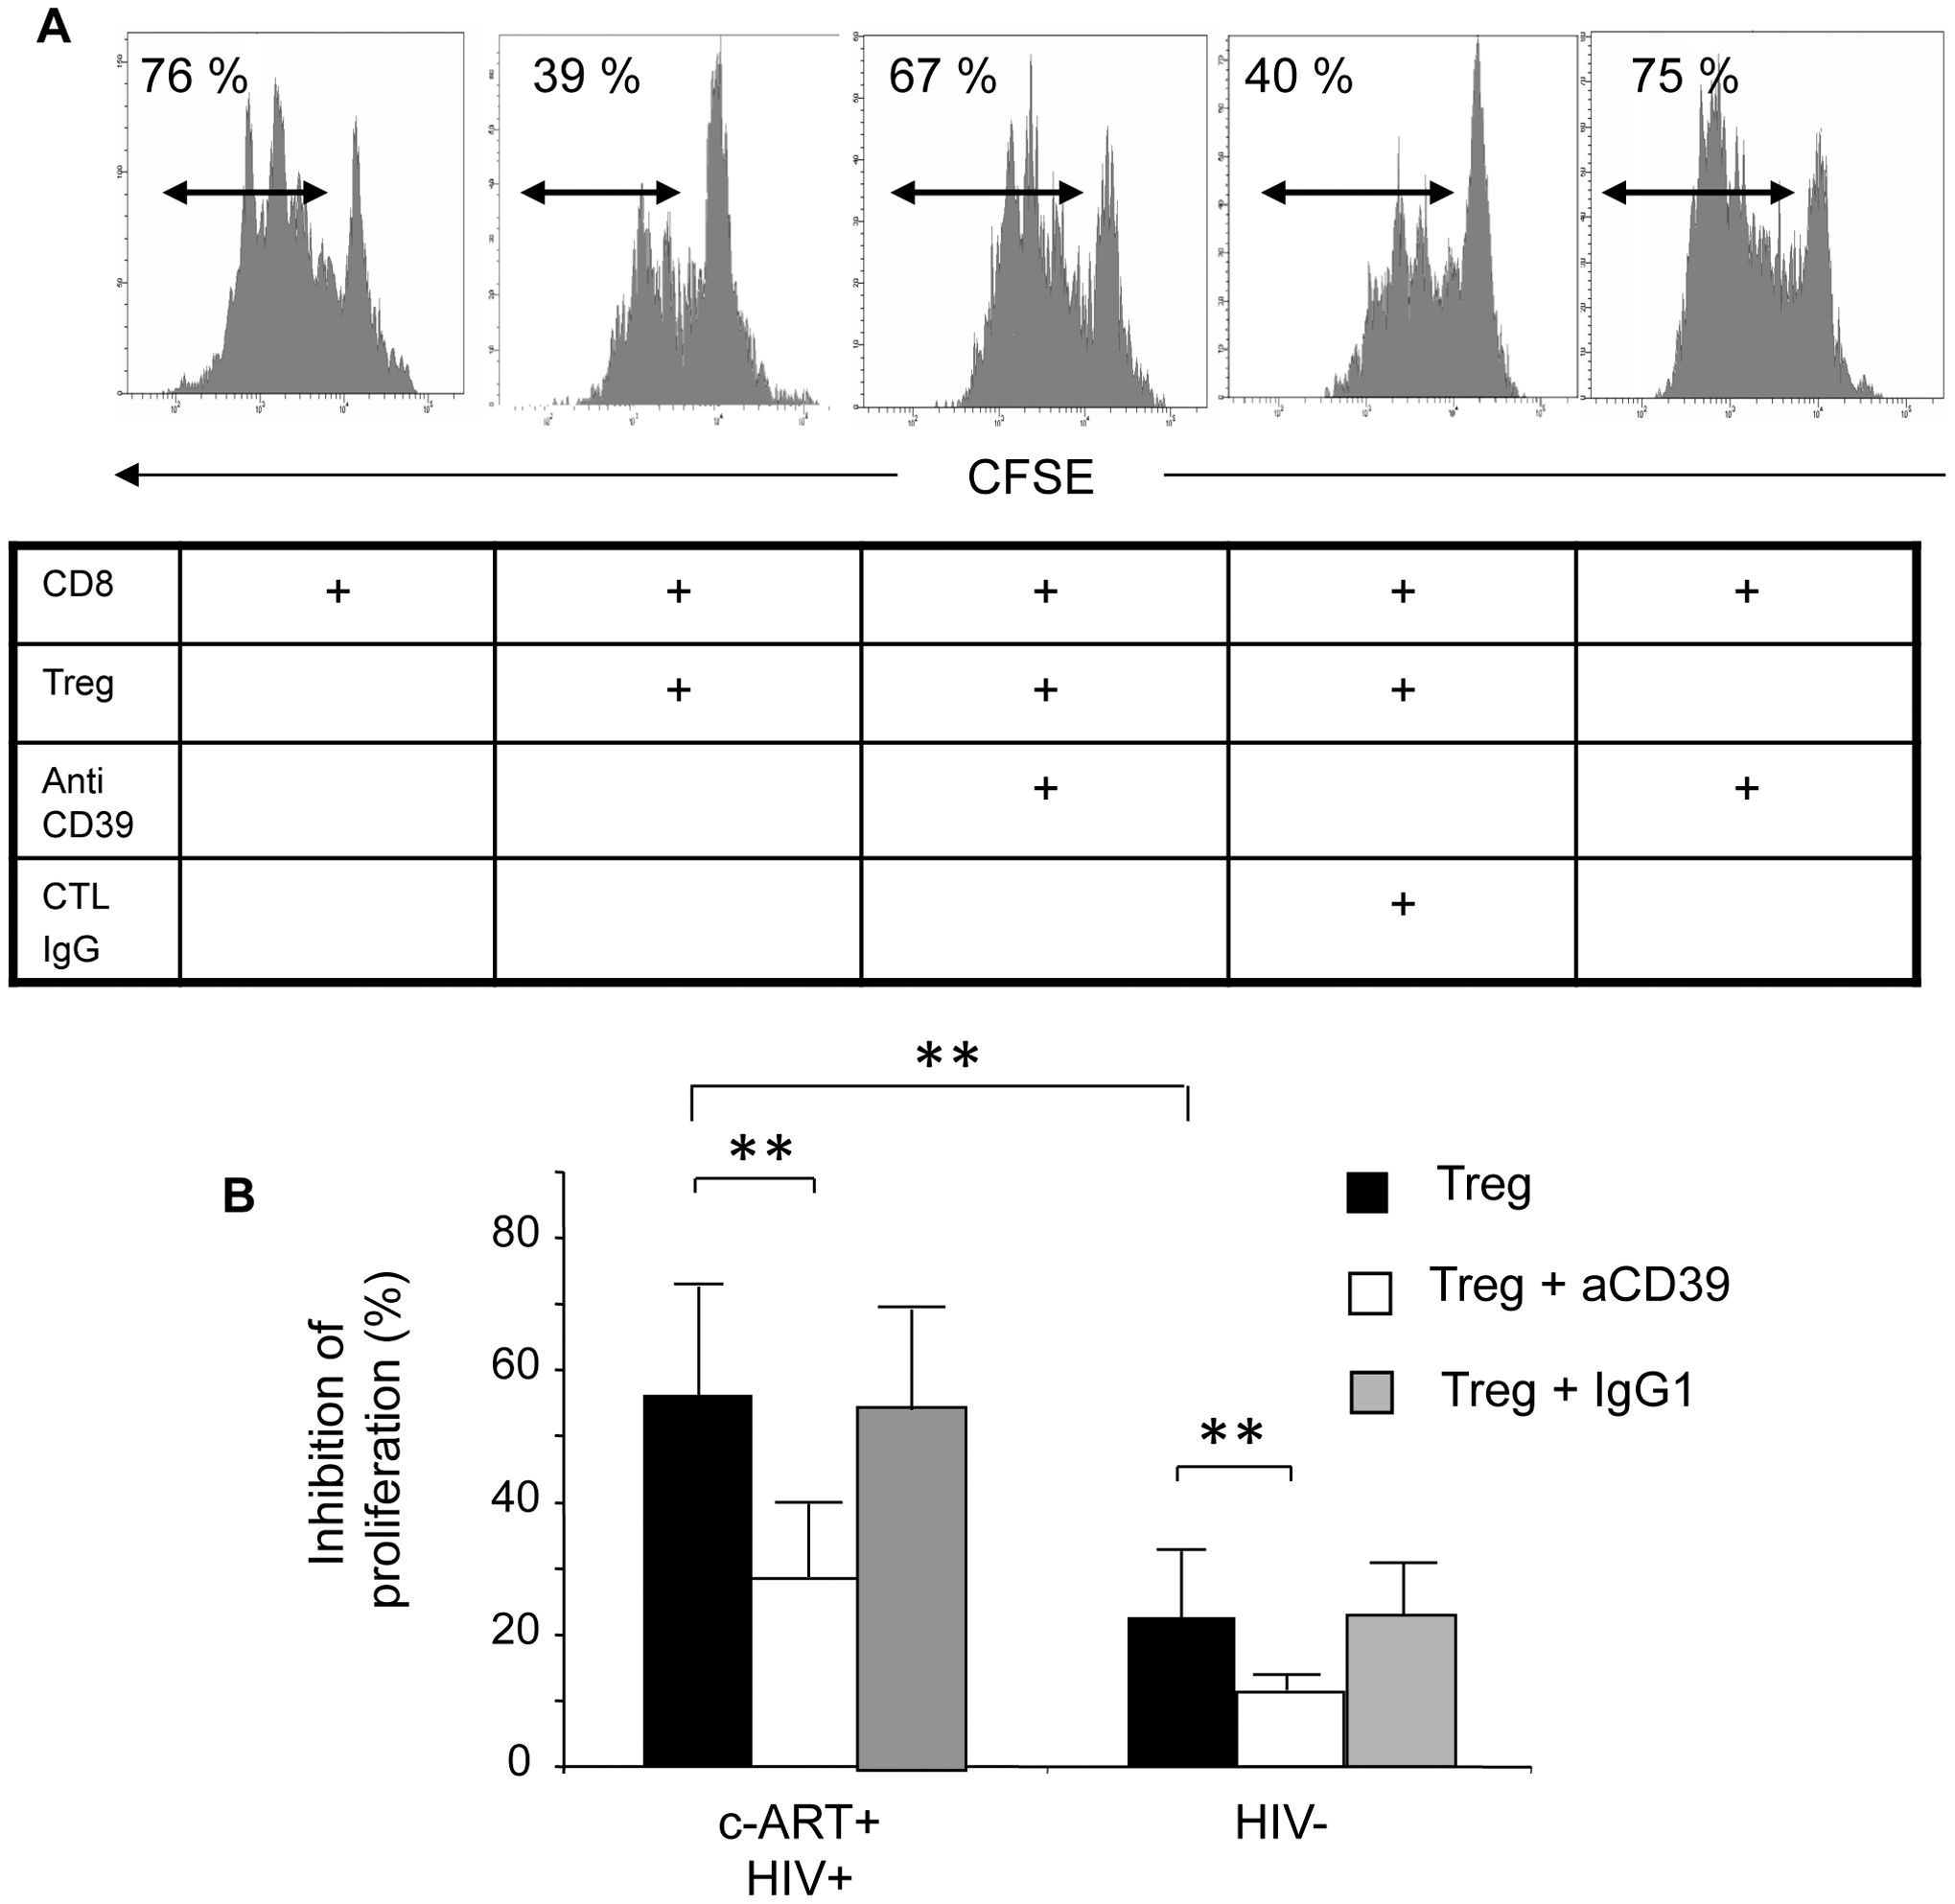 CD39 blocking mAb reverses the suppressive effect of Treg on the proliferation of anti-CD3 stimulated CD8+ T cells.